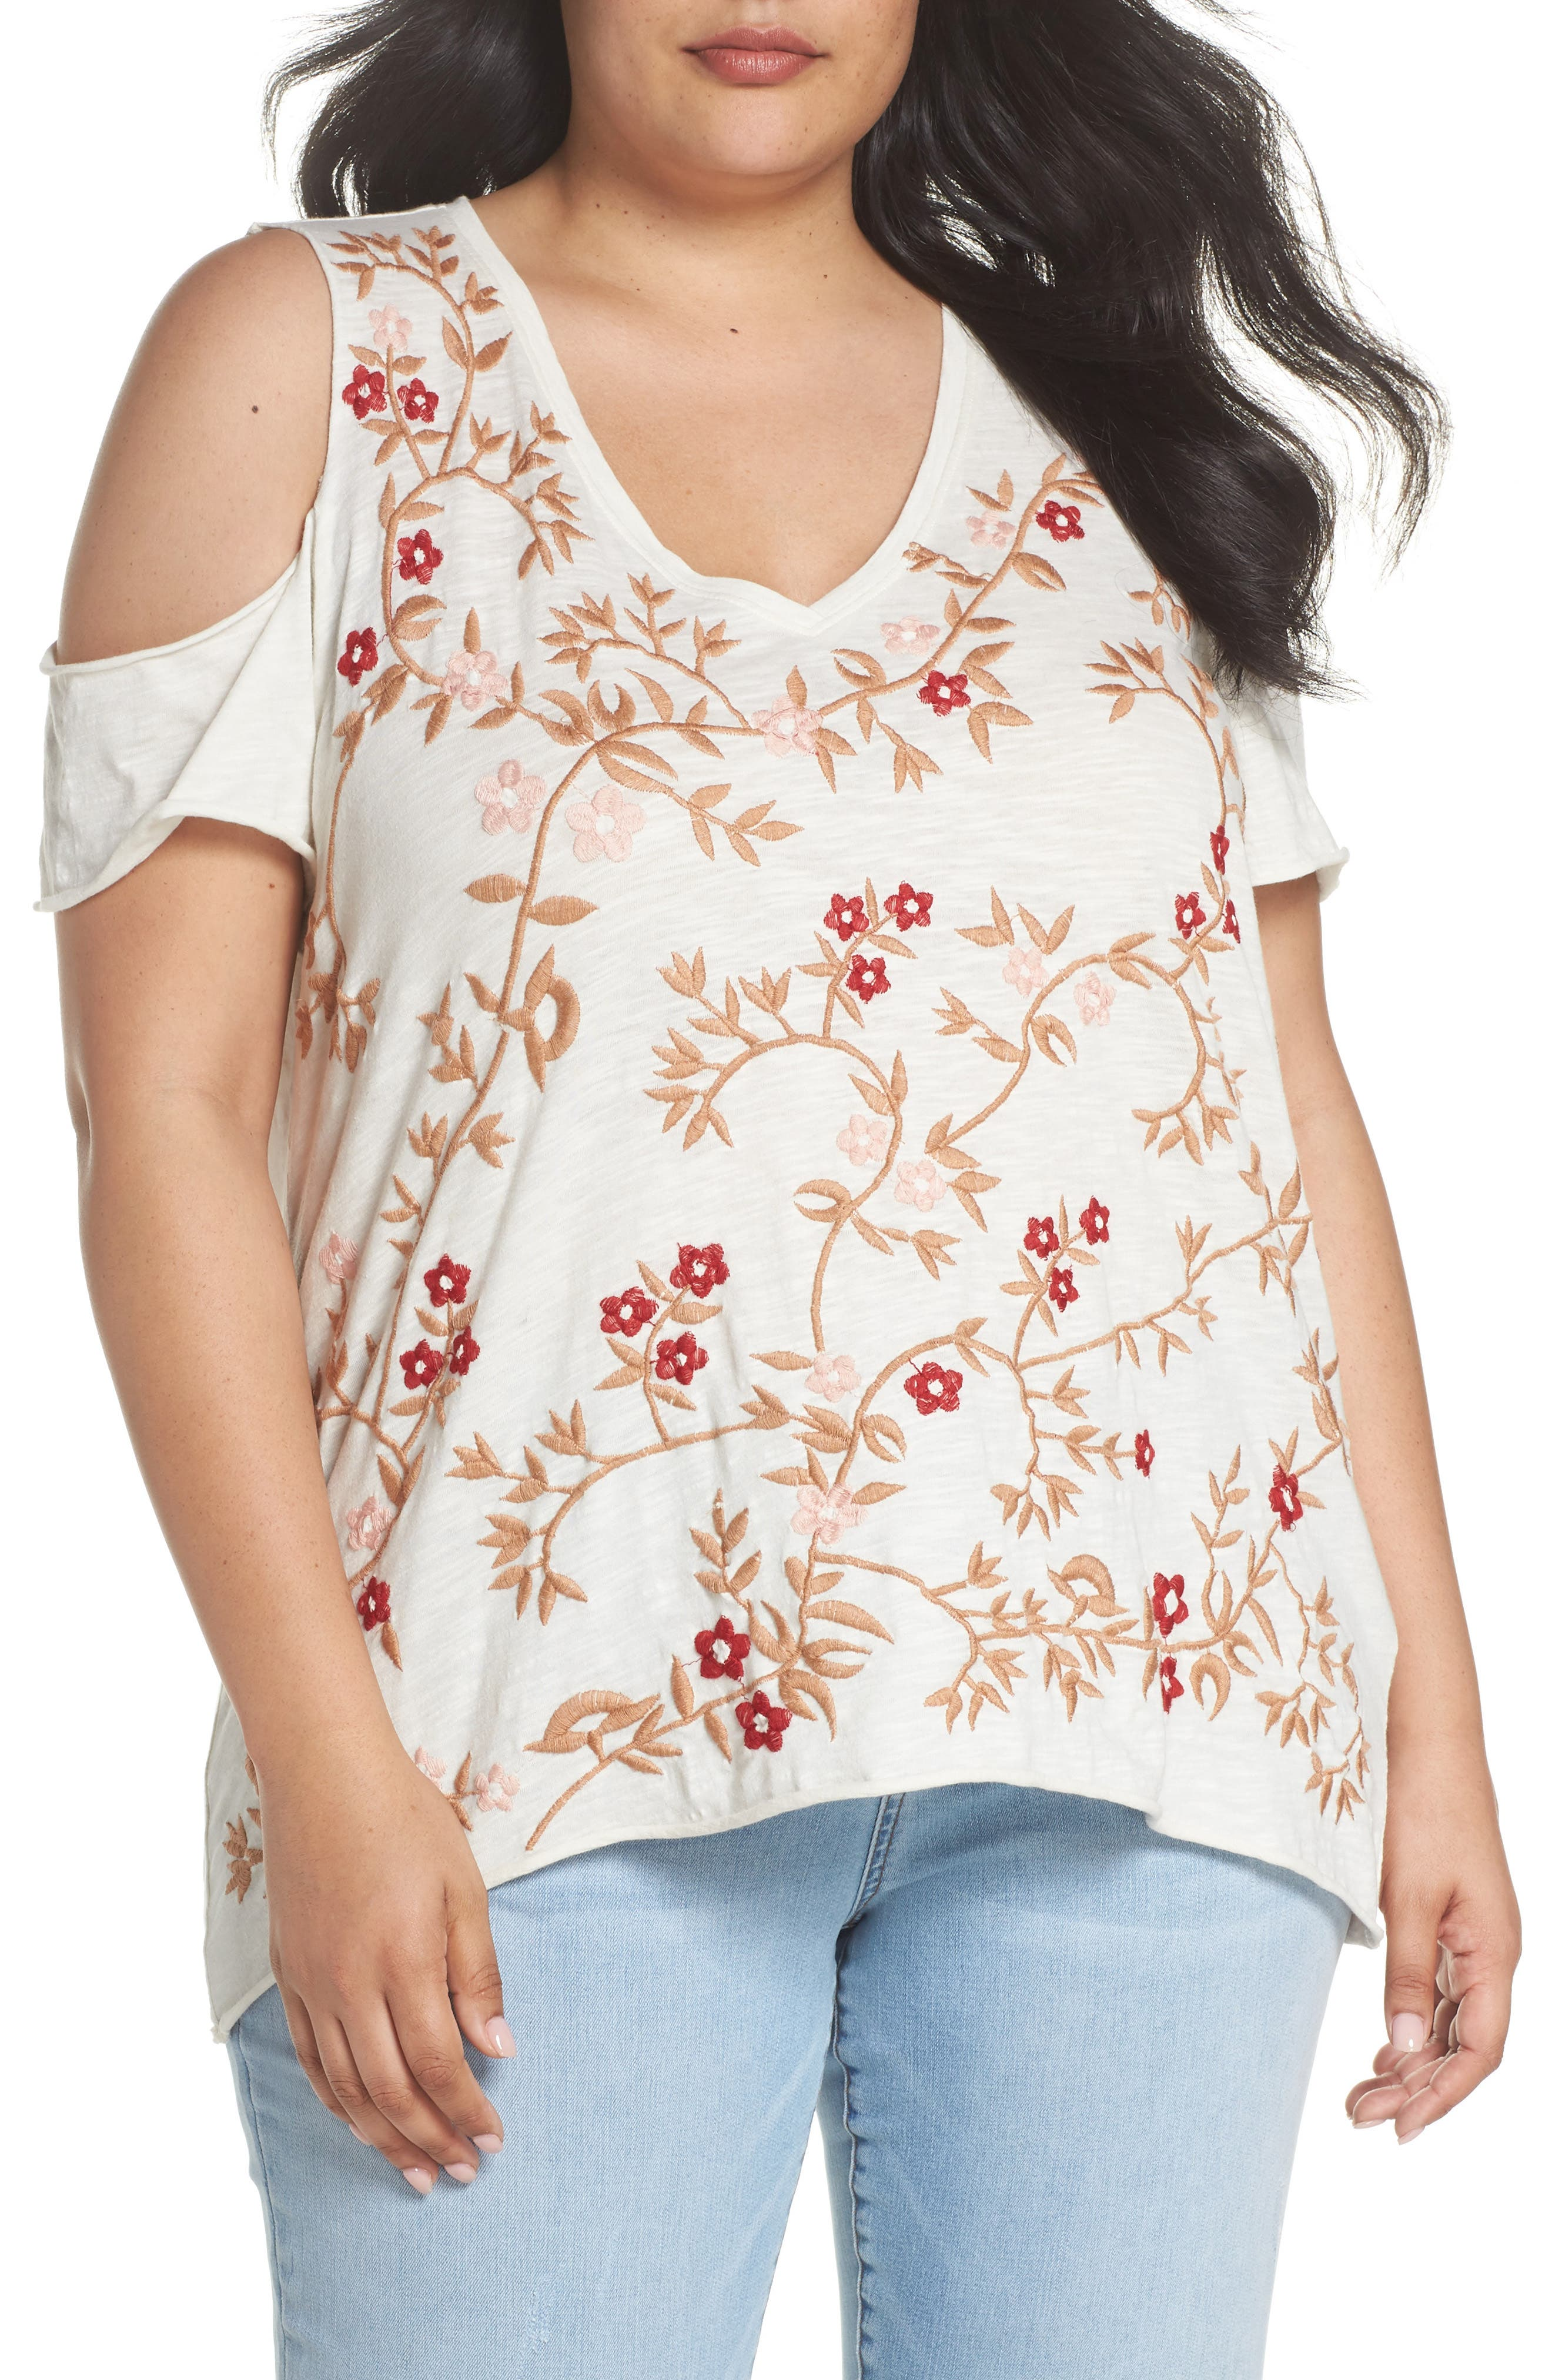 Main Image - Lucky Brand Floral Embroidered Tee (Plus Size)